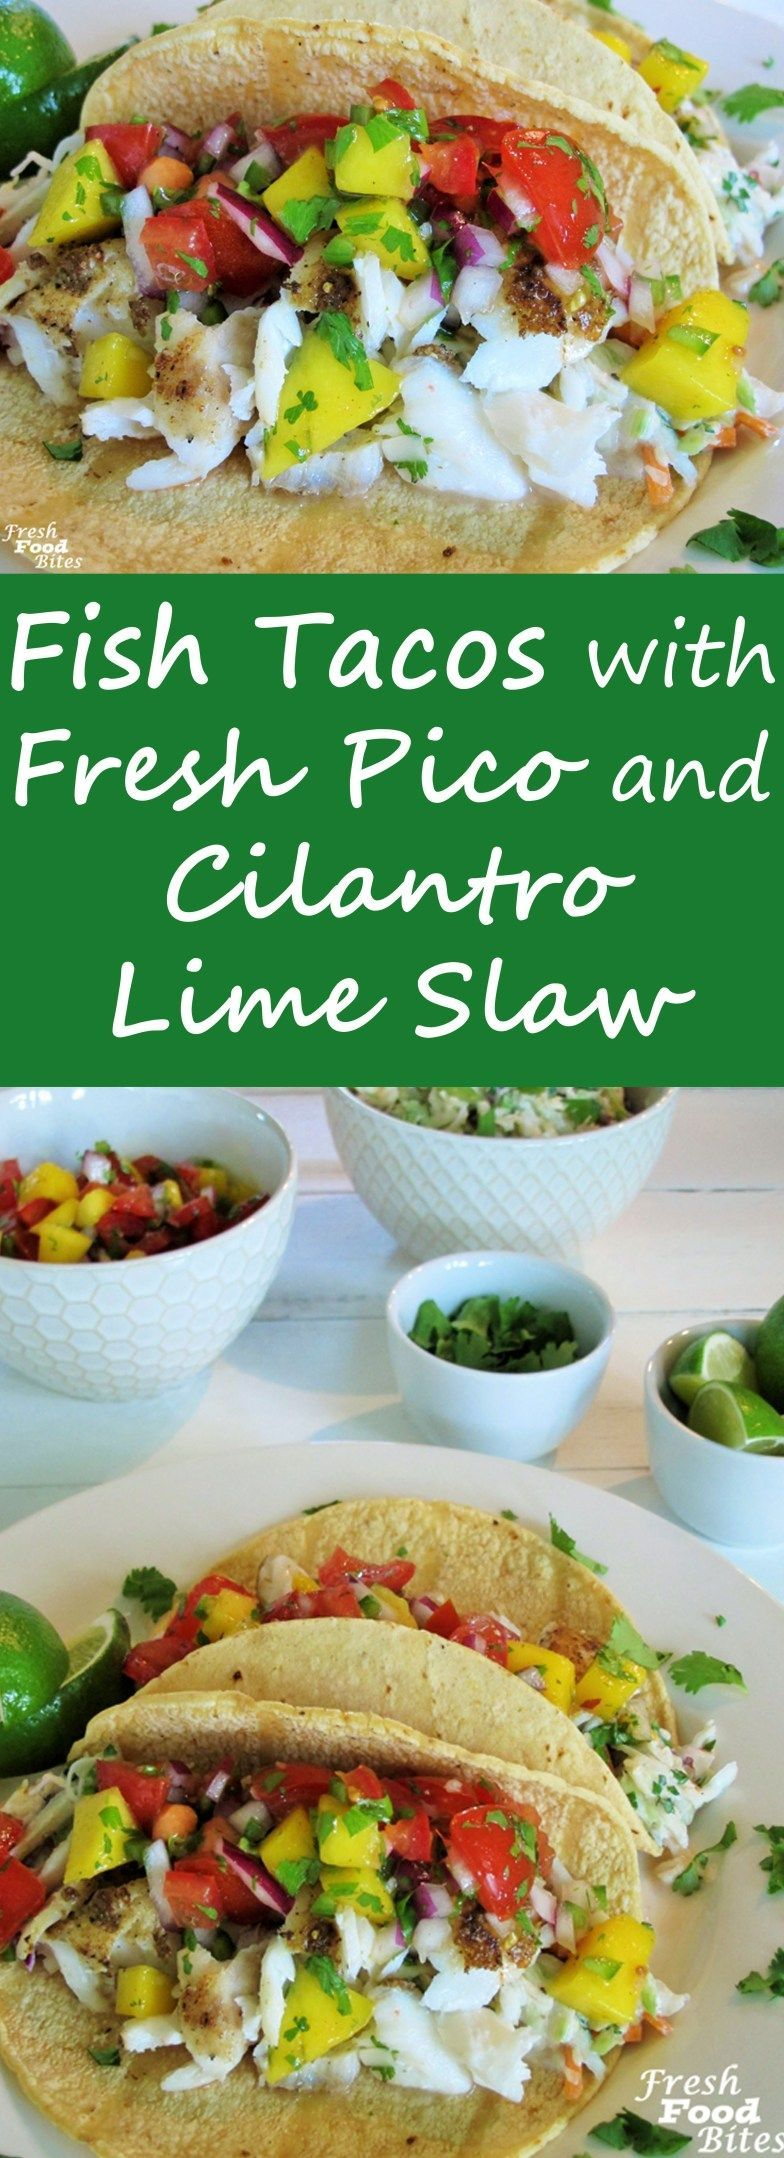 Fish Tacos with Fresh Pico and Cilantro-Lime Slaw #cilantrolimeslaw Fish Tacos with Fresh Pico and Cilantro-Lime Slaw #cilantrolimeslaw